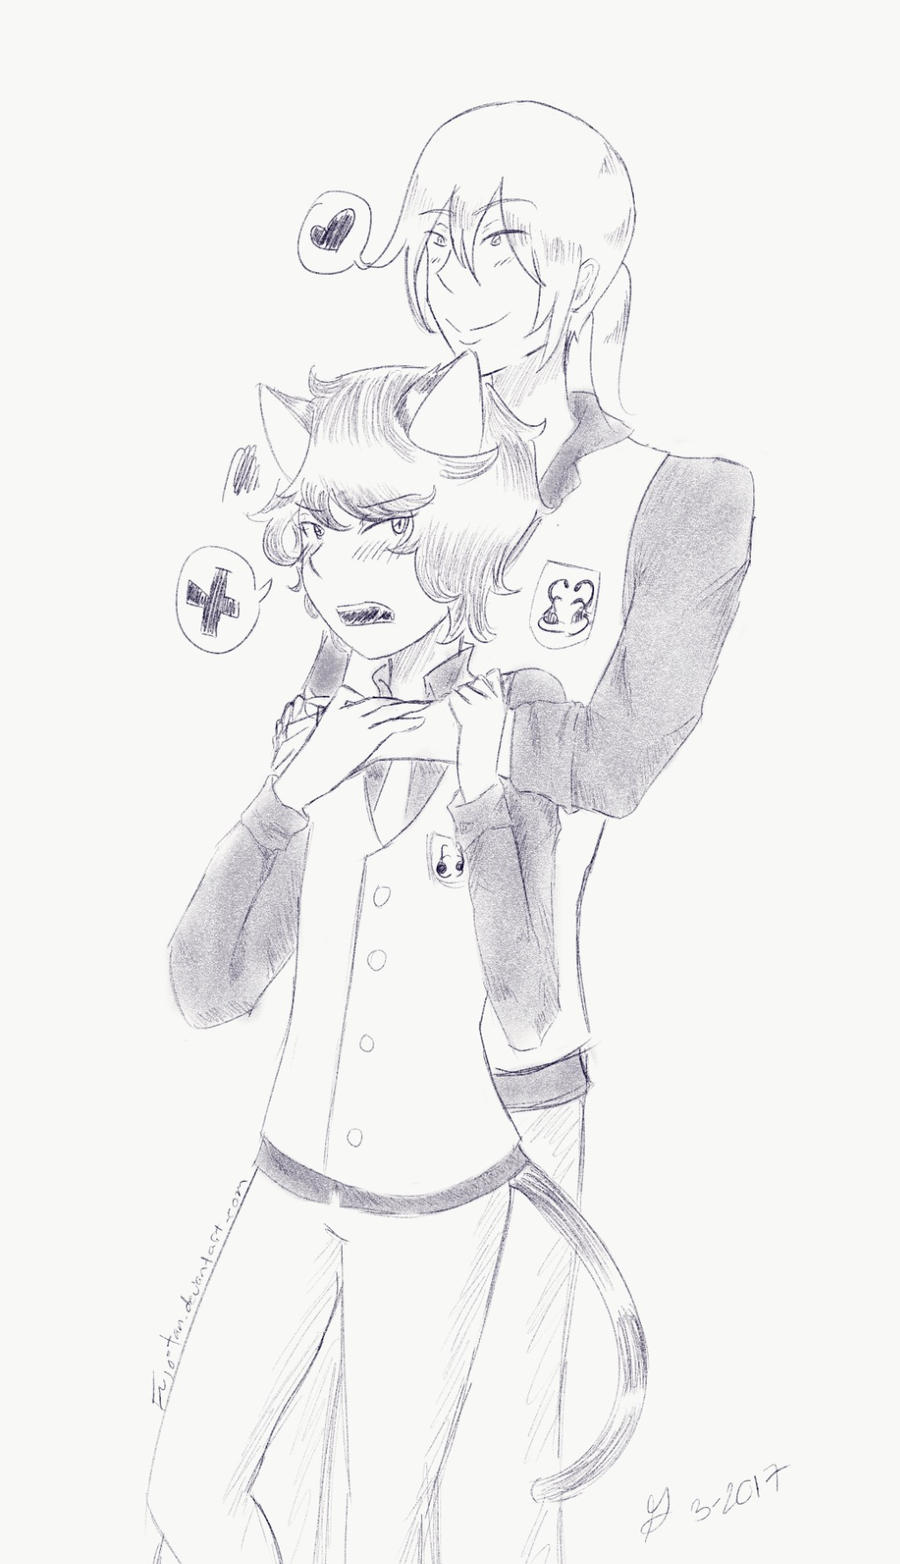 30-Day OTP Challenge- Day 1 by Fujo-tan